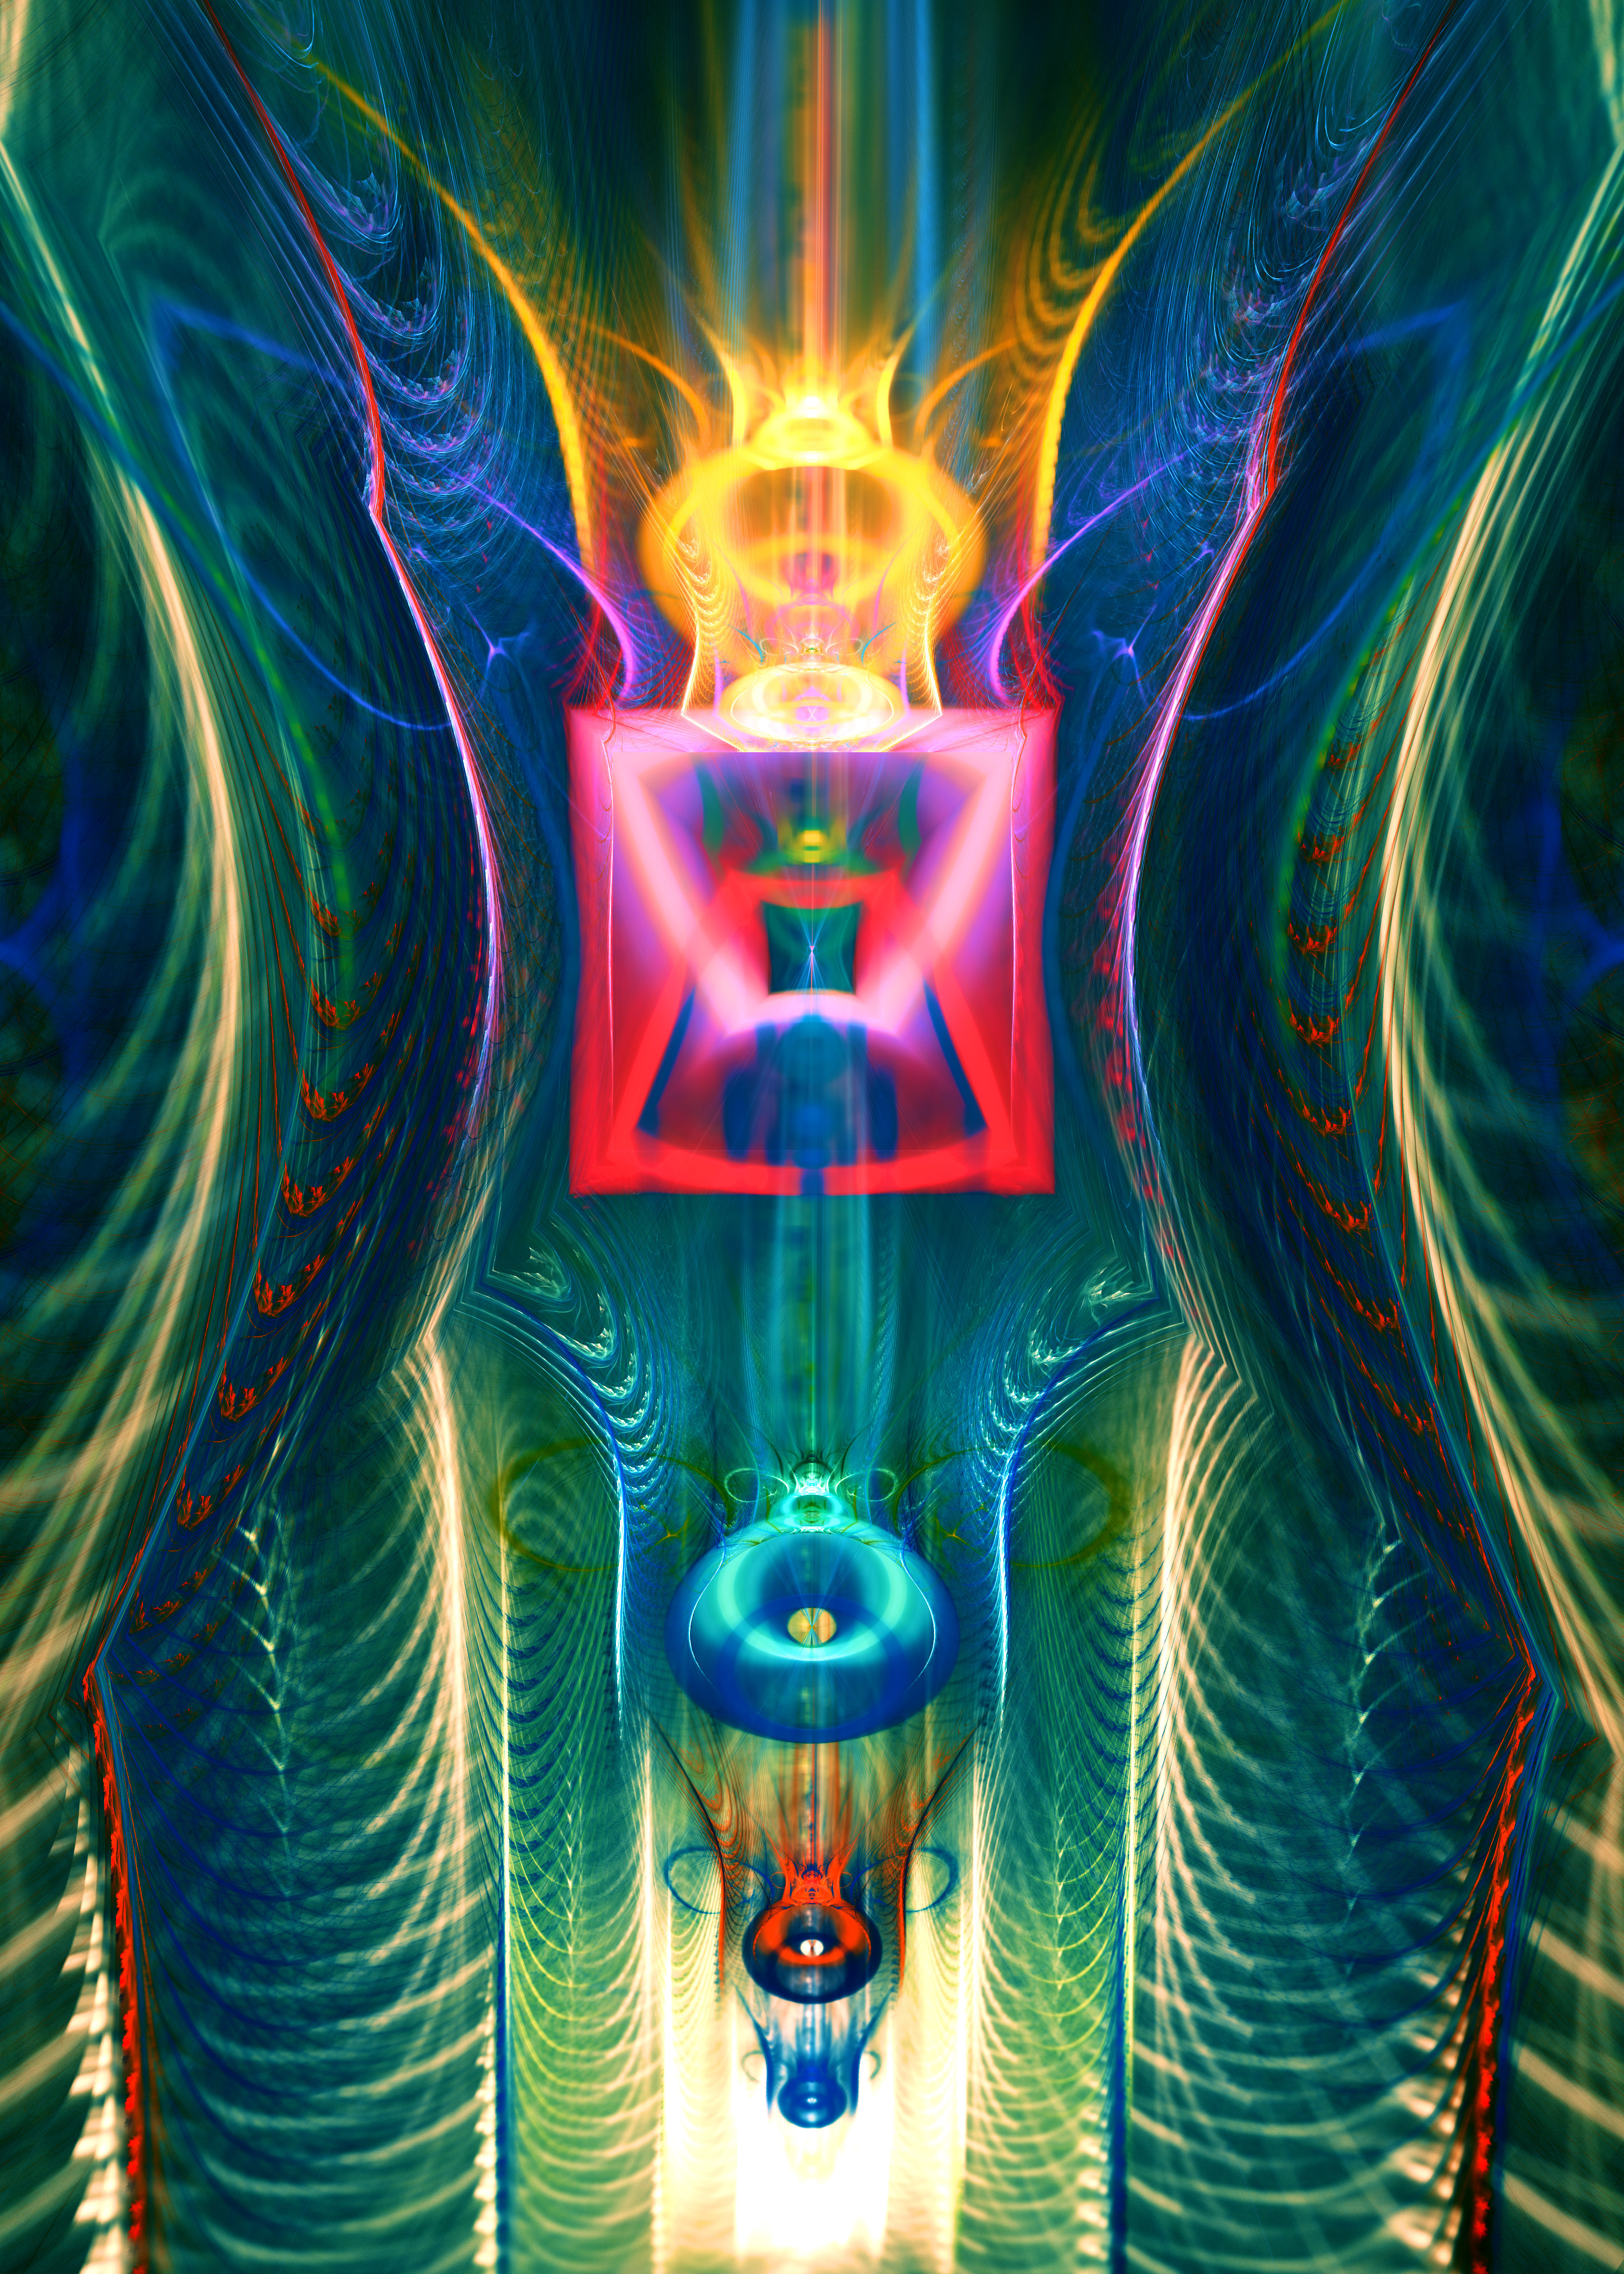 Ascension - The raising of the consciousness to attain a new perspective.